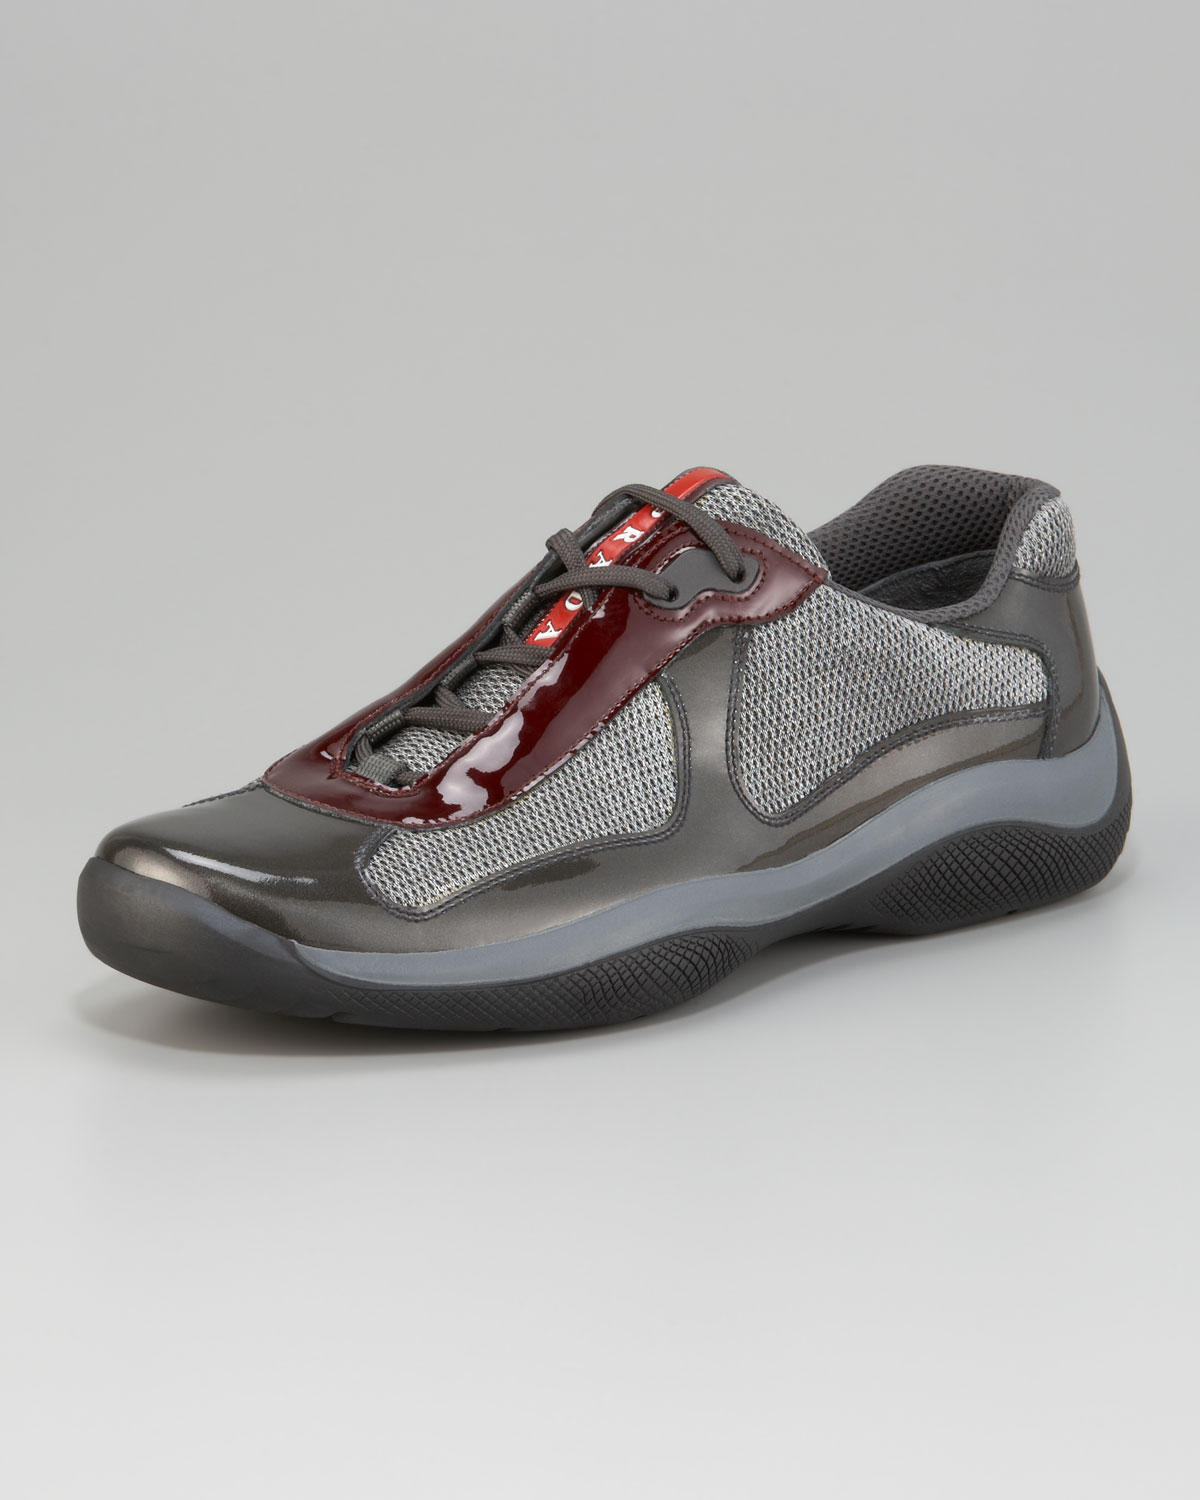 Mens Leather Prada Shoes